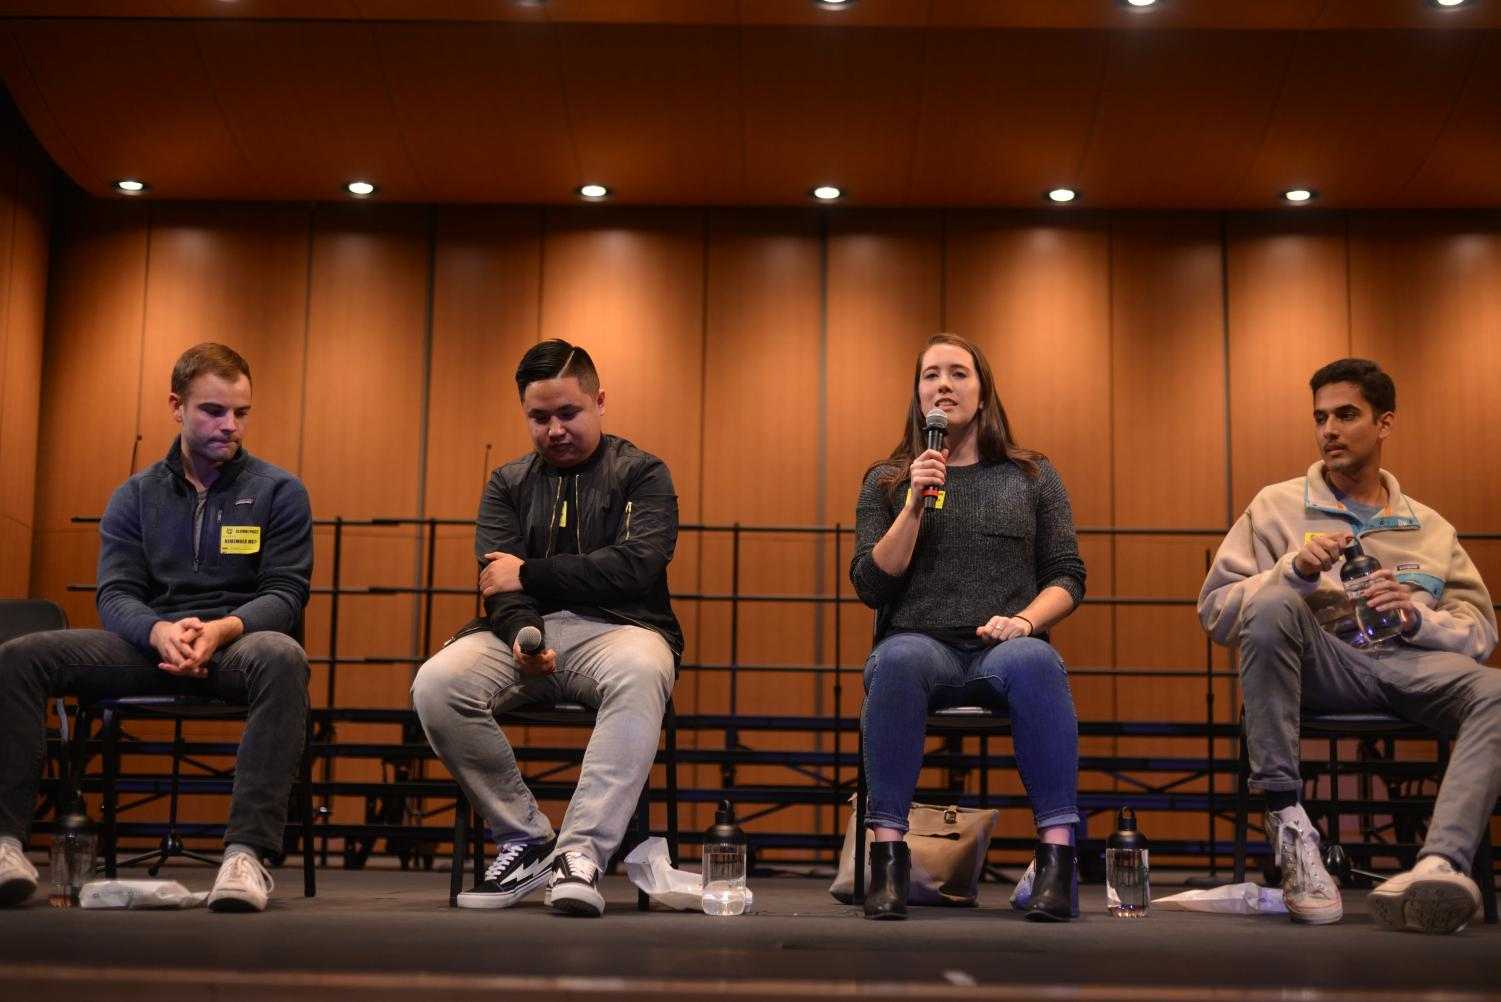 Stephen Hughes ('12), Nick Nguyen ('15), Sheridan Tobin ('15) and Raghav Jain ('16) talk about their college lifestyles during a LIFE meeting for the seniors last Wednesday. The discussion was moderated by seniors Radhika Jain and Adhya Hoskote.